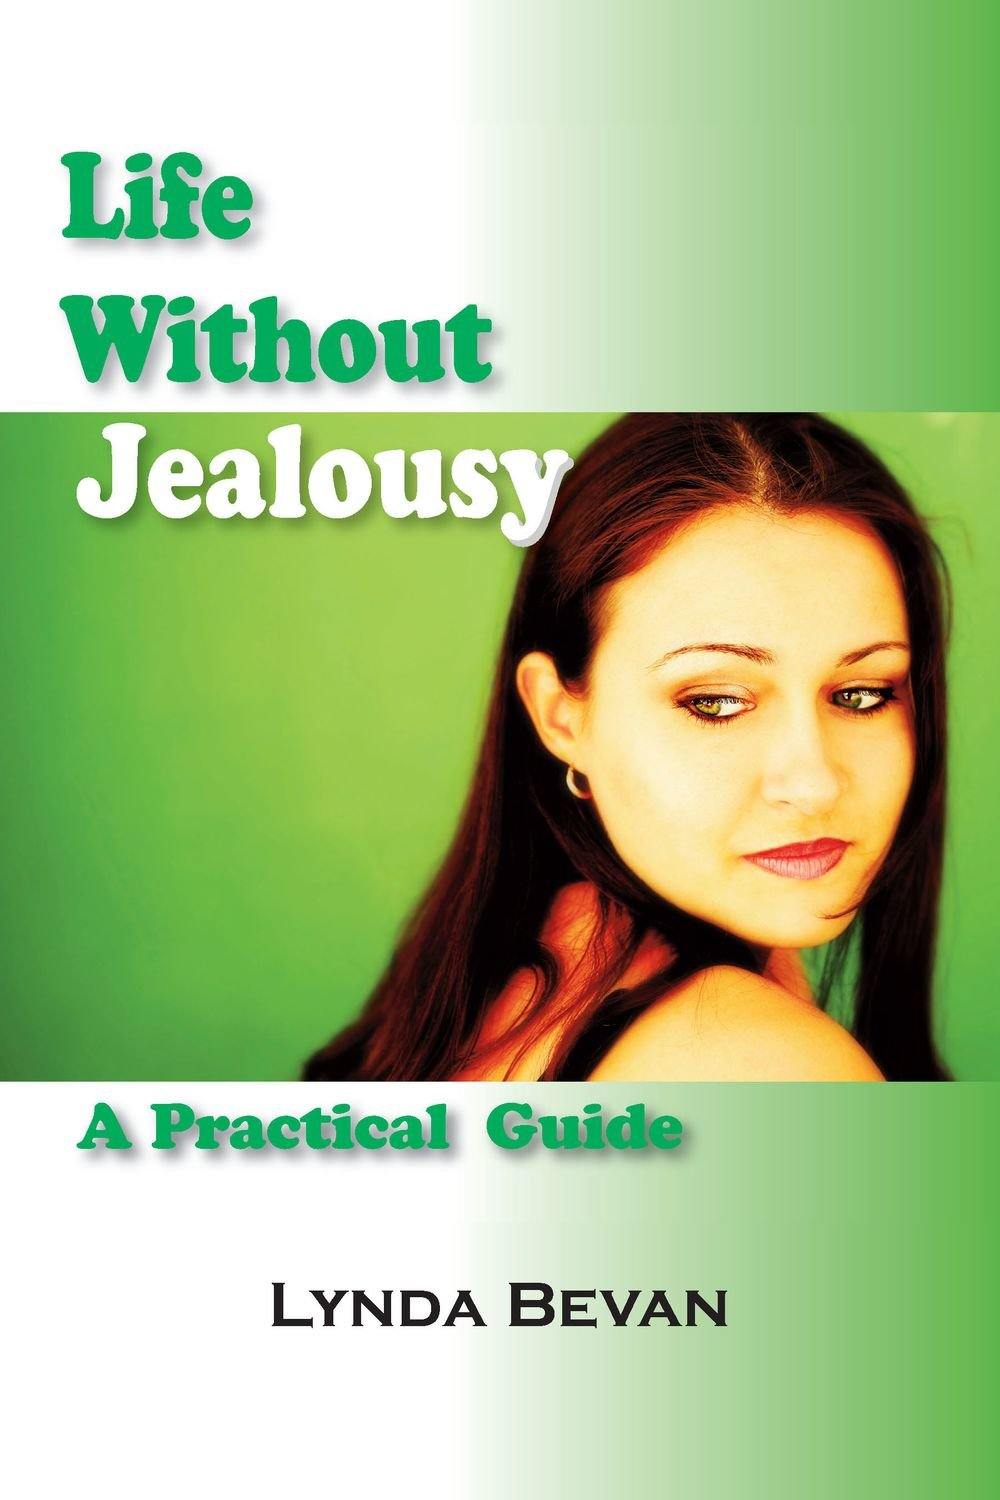 Life Without Jealousy: A Practical Guide